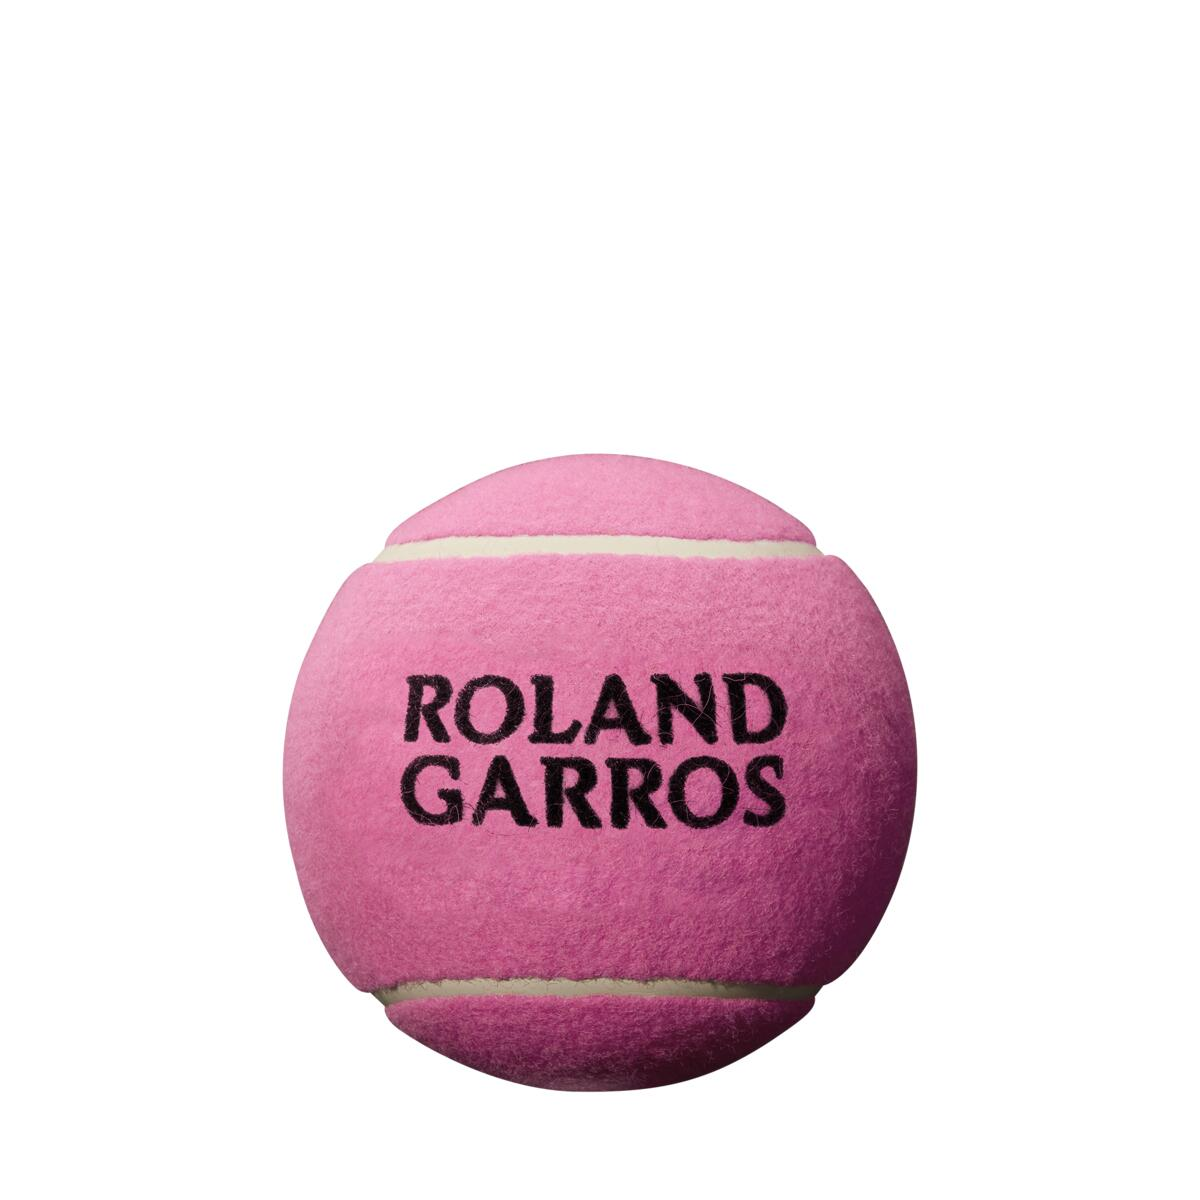 WRT1416PD_0_Roland_Garros_Pink_Mini_Ball.png.cq5dam.web.1200.1200